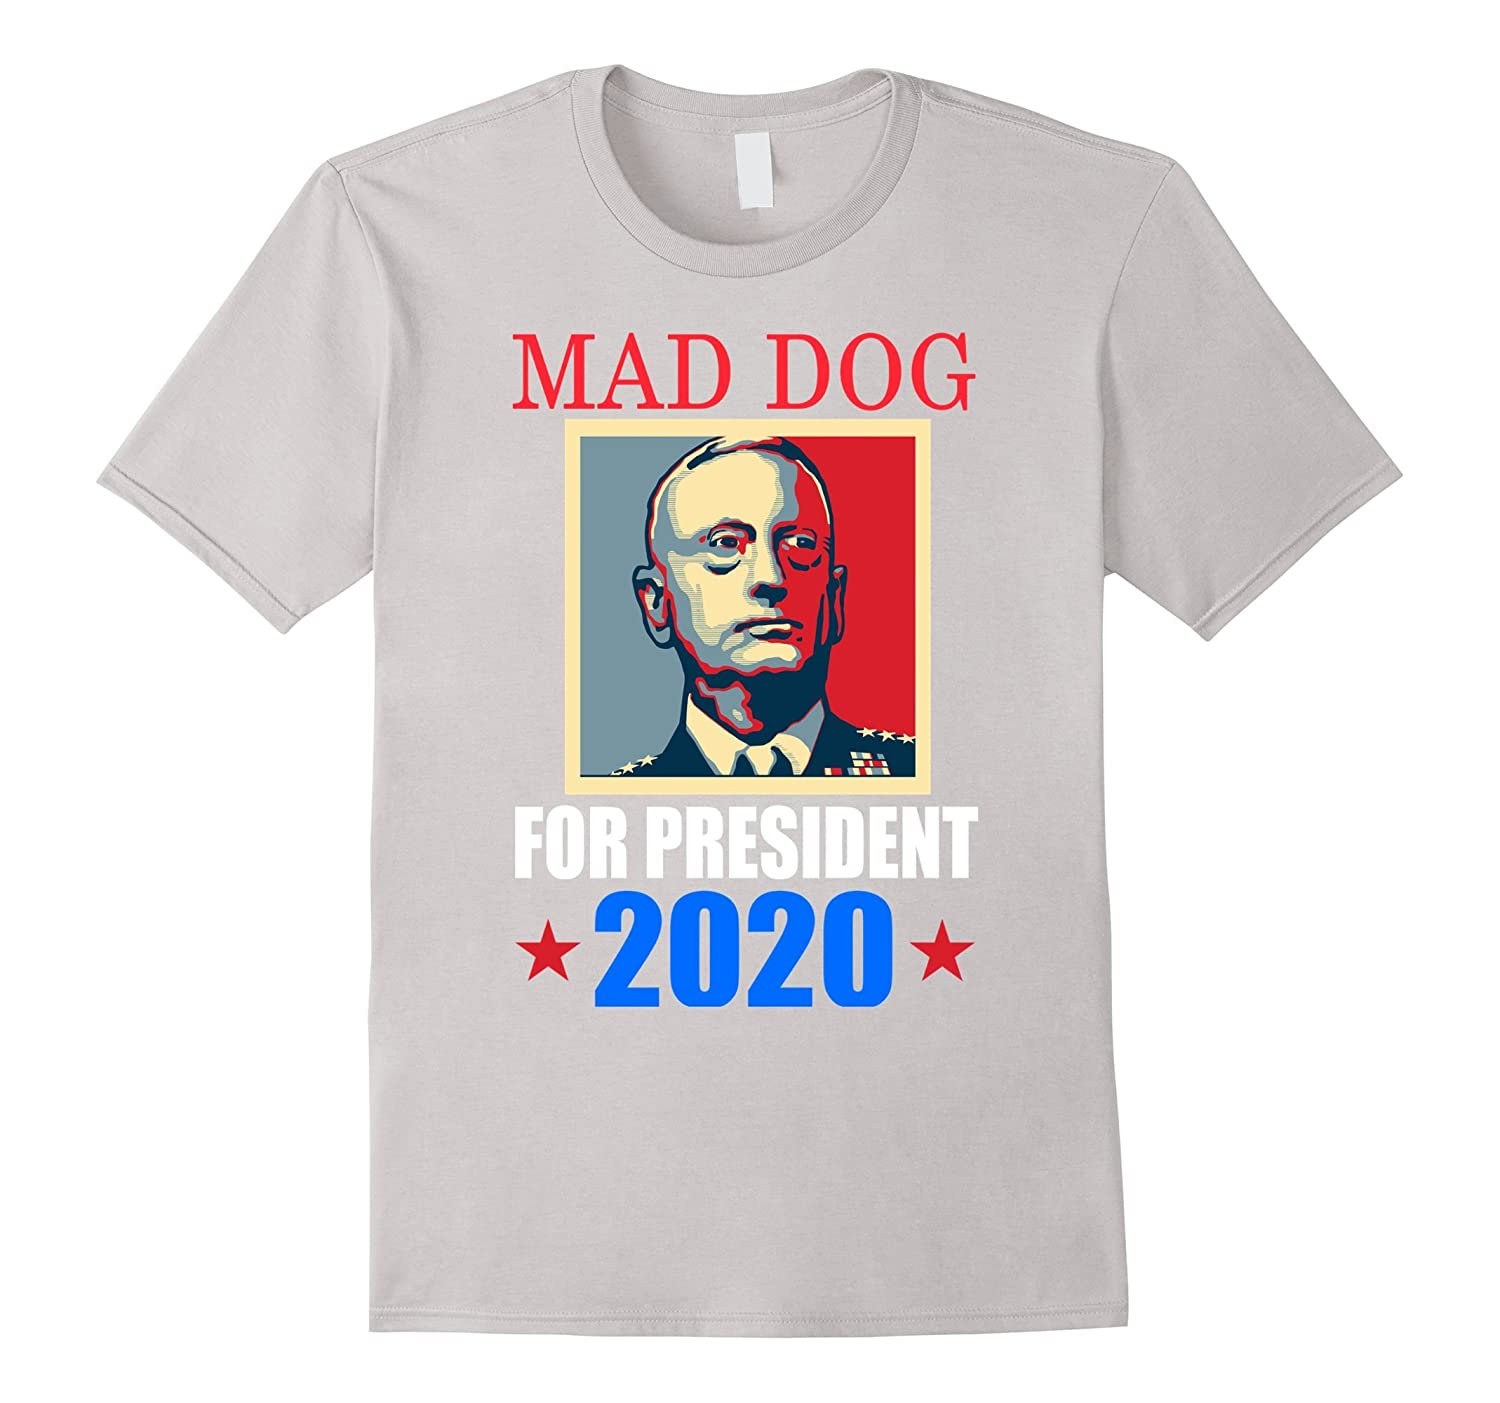 General Mad Dog Mattis Knifehands For President 2020 T-shirt-TH